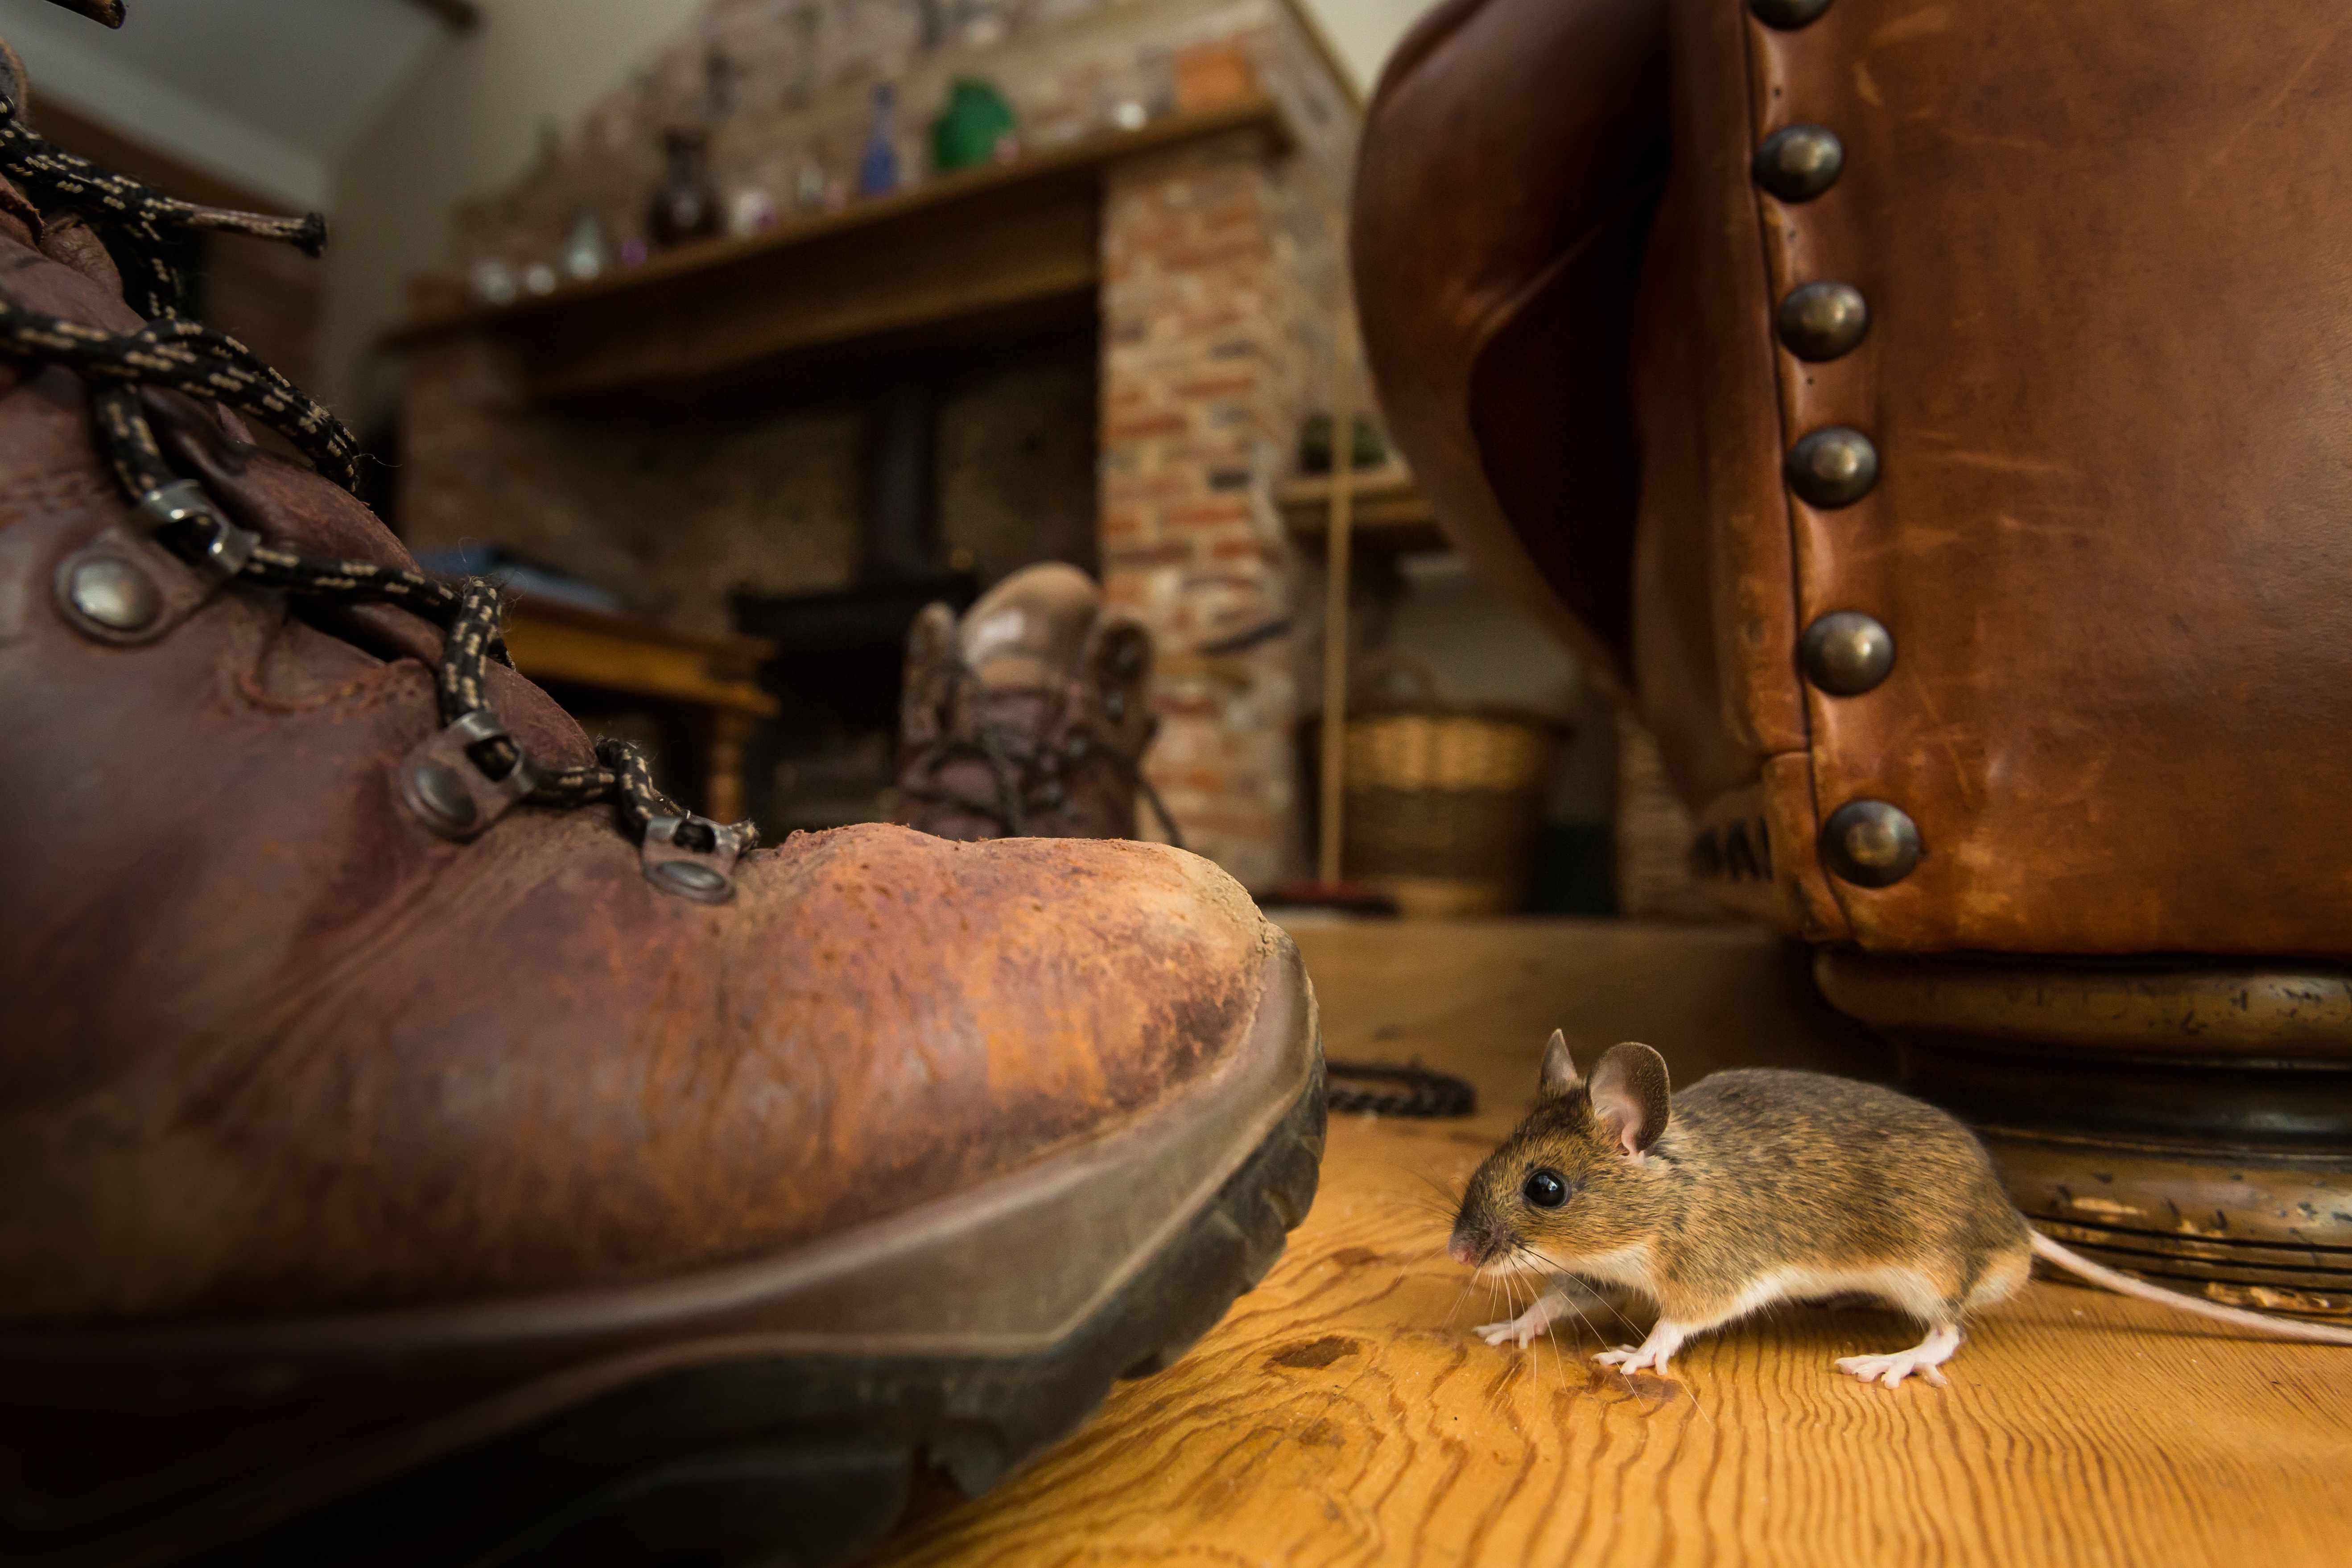 A mouse indoors © Damien Kuzdak / Getty